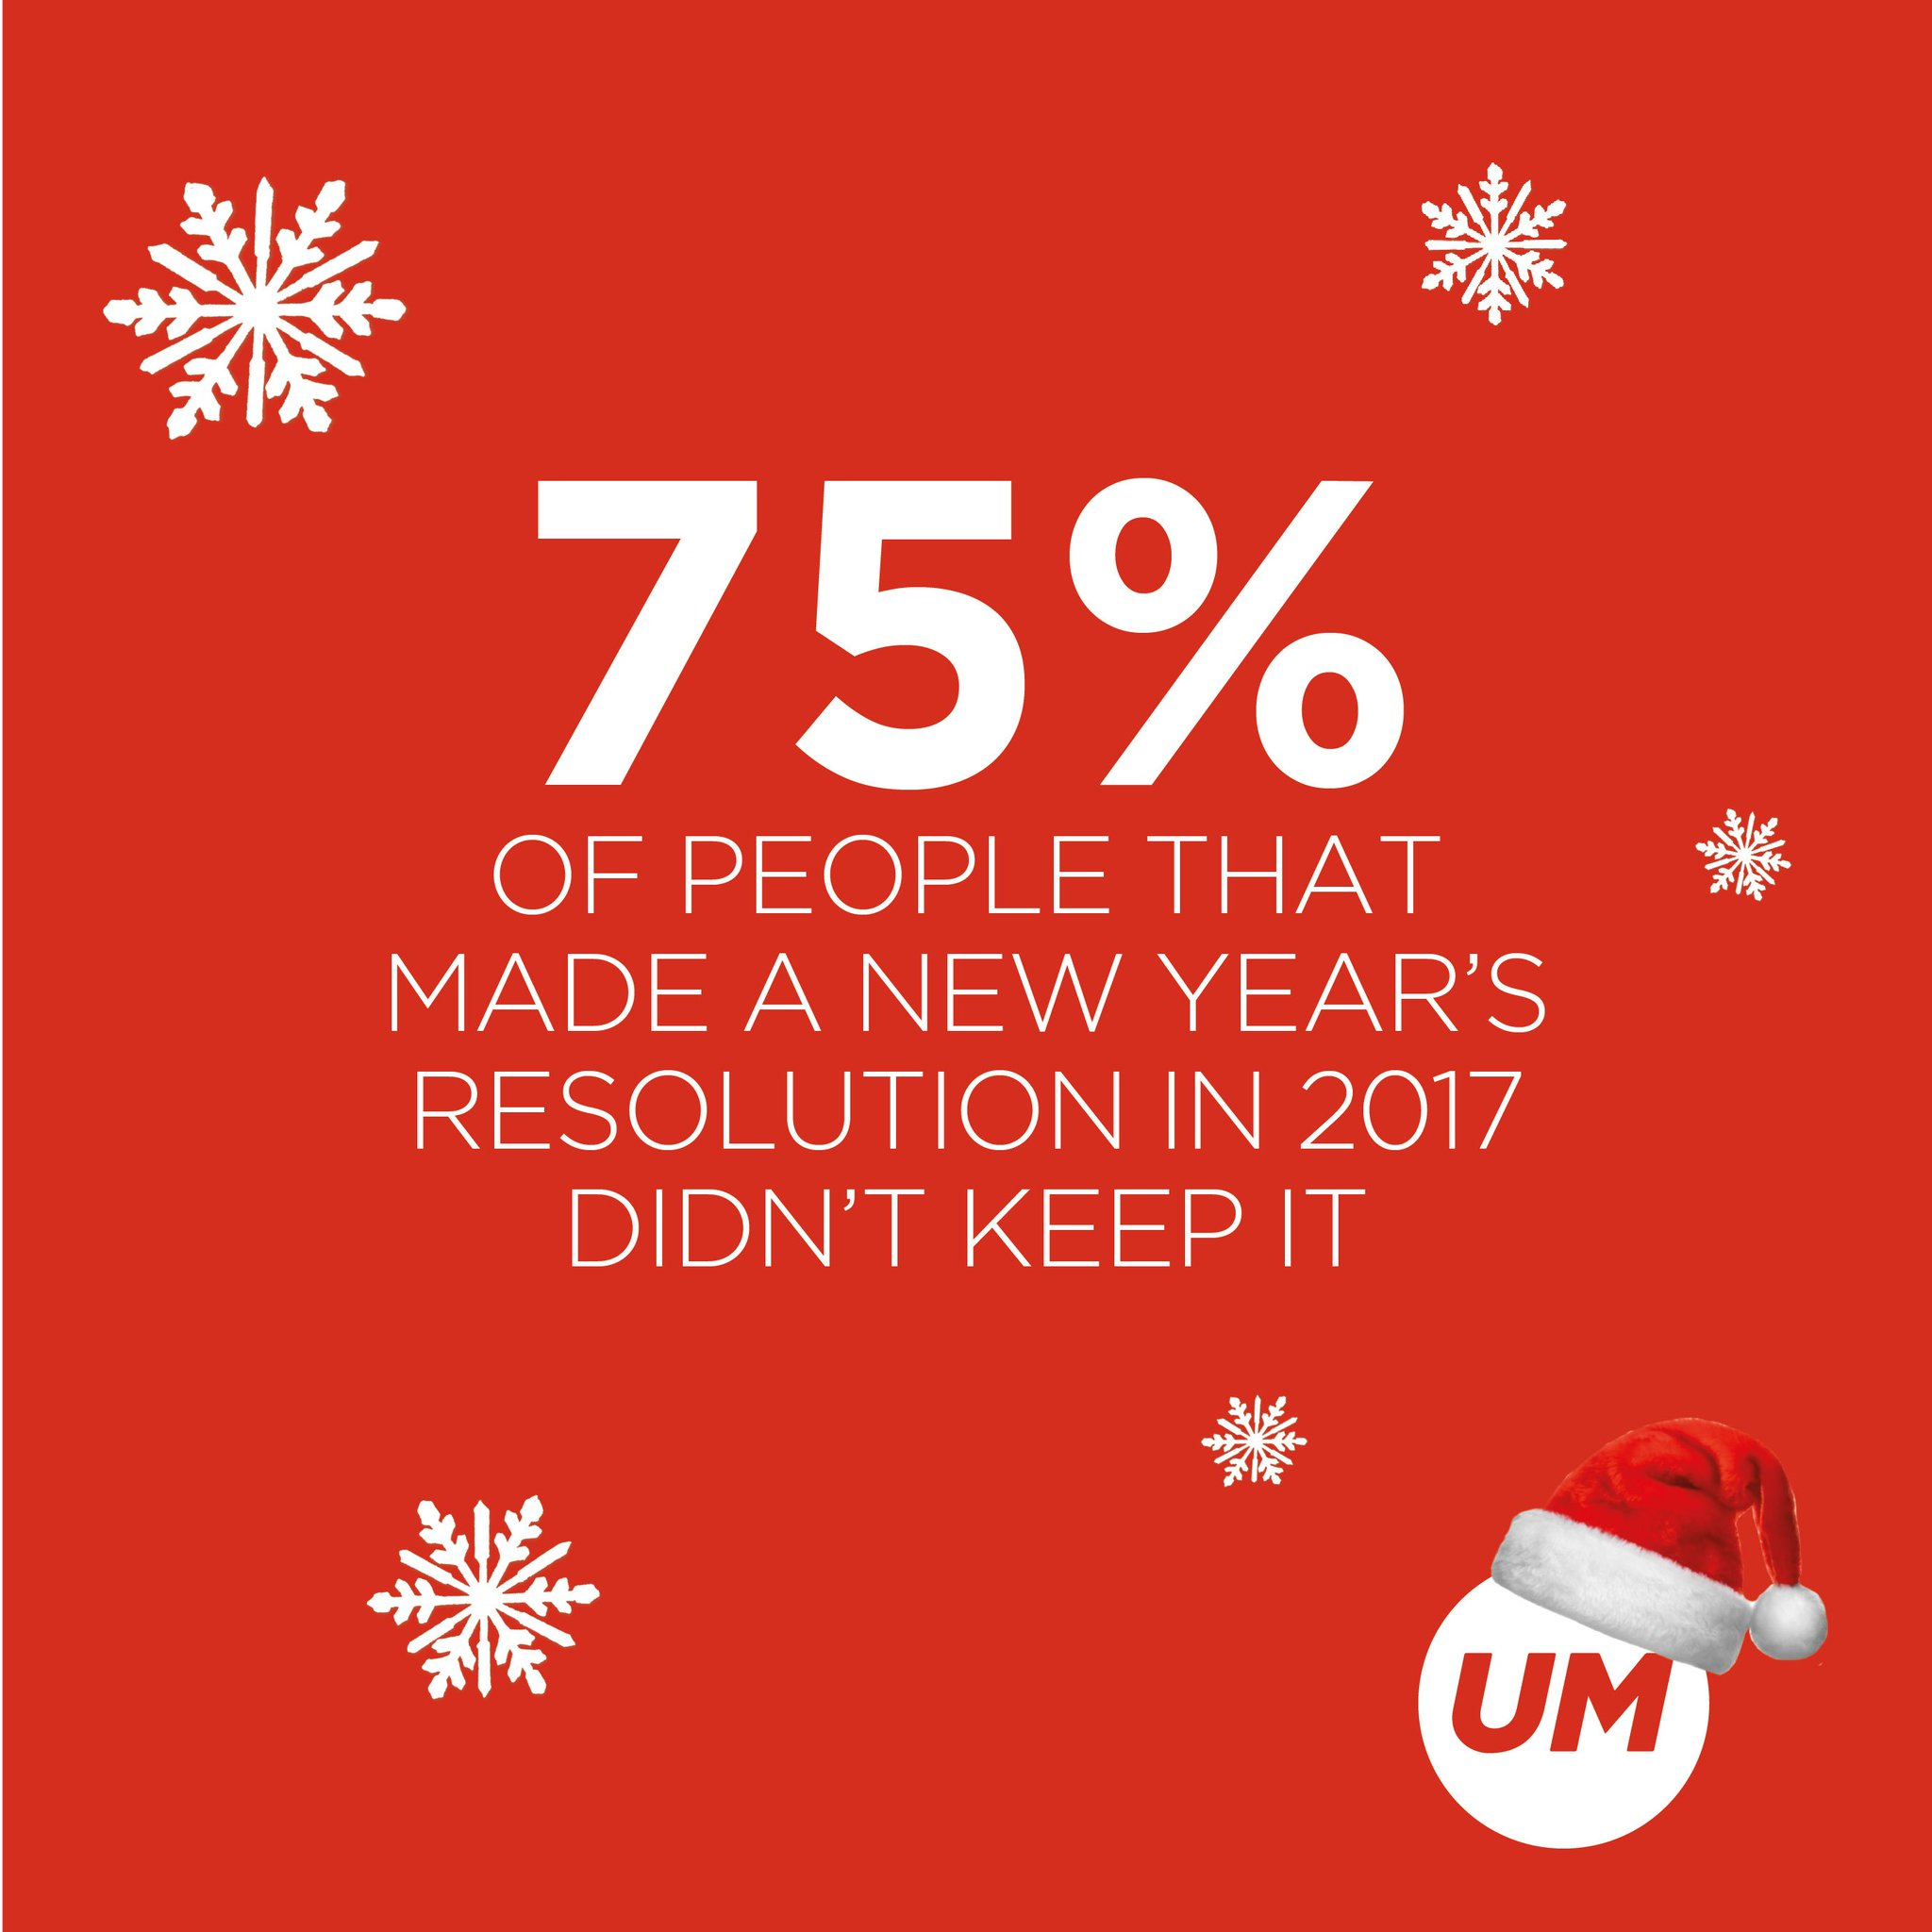 RT @UMLondon: Good intentions for the #NewYear? Don't hold onto them too tightly... #StatOfTheWeek #2018 https://t.co/KkU0WTrWSK